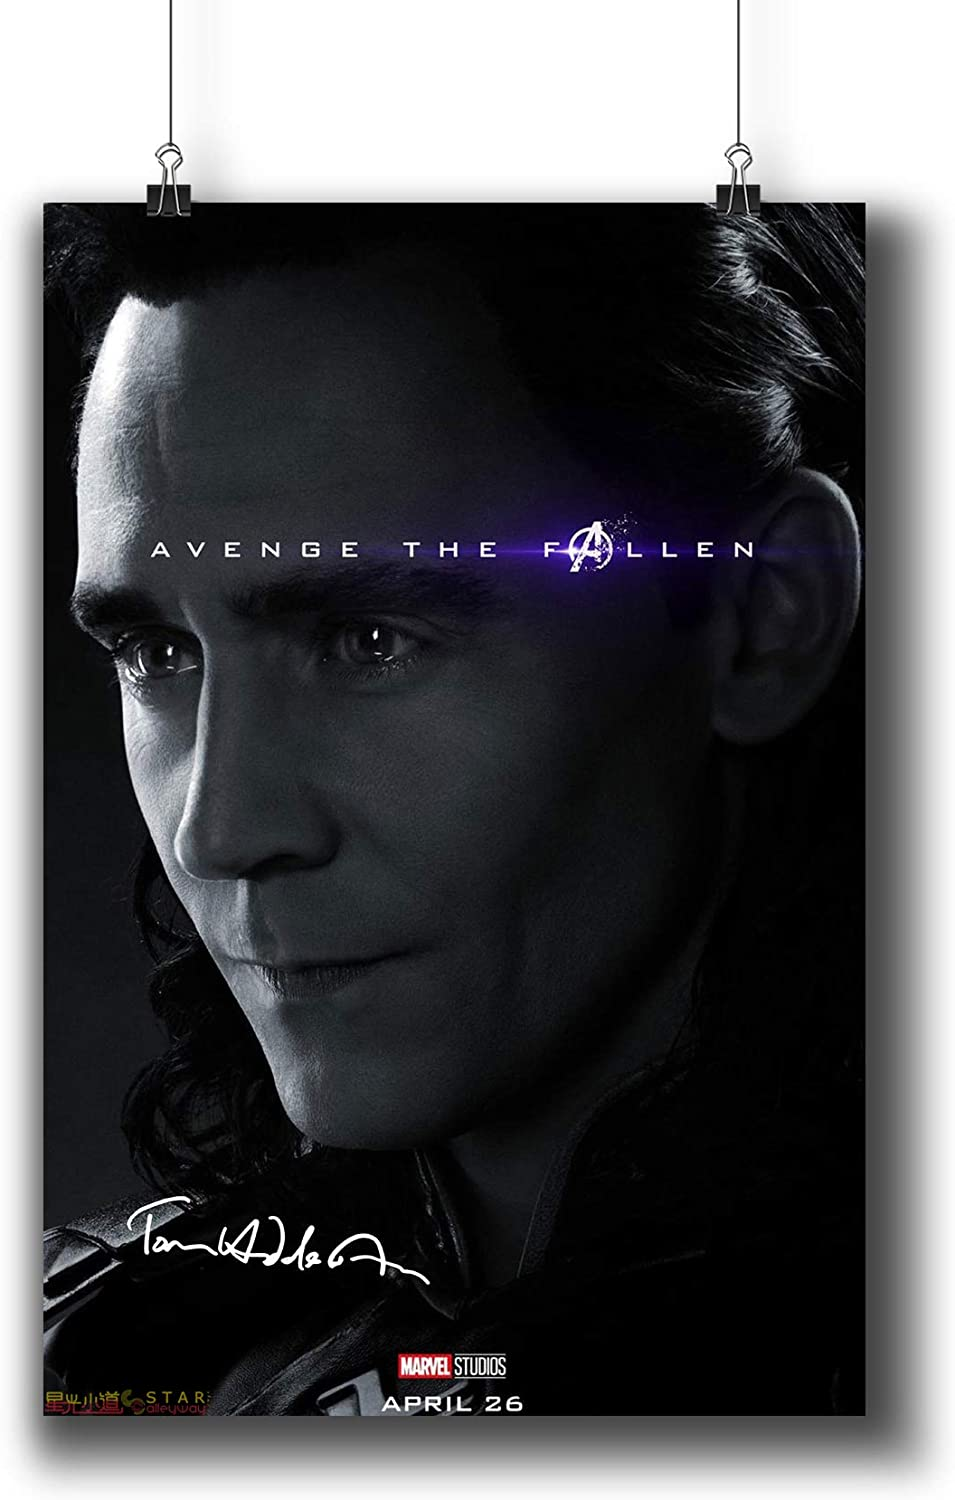 Avengers: Endgame (2019) Movie Poster Small Prints 183-330 Loki Reprint Signed Casts,Wall Art Decor for Dorm Bedroom Living Room (A3 11x17inch 29x42cm)